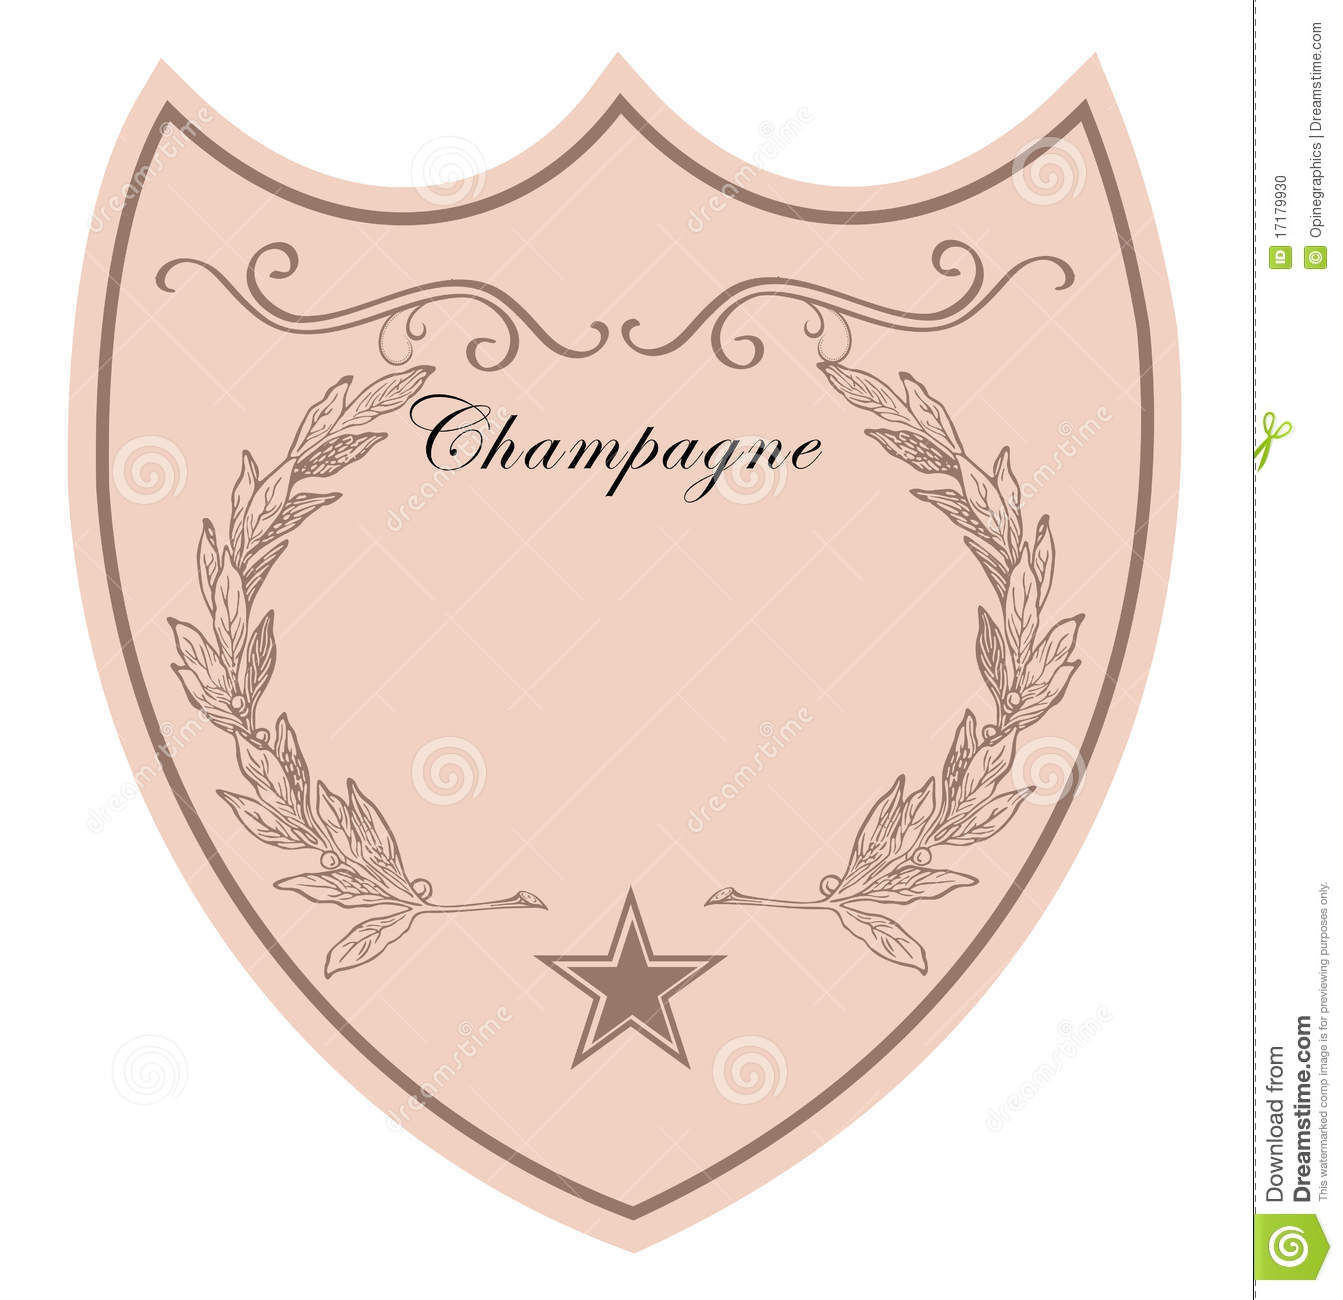 FREE wedding champagne labels (retro style template). Your